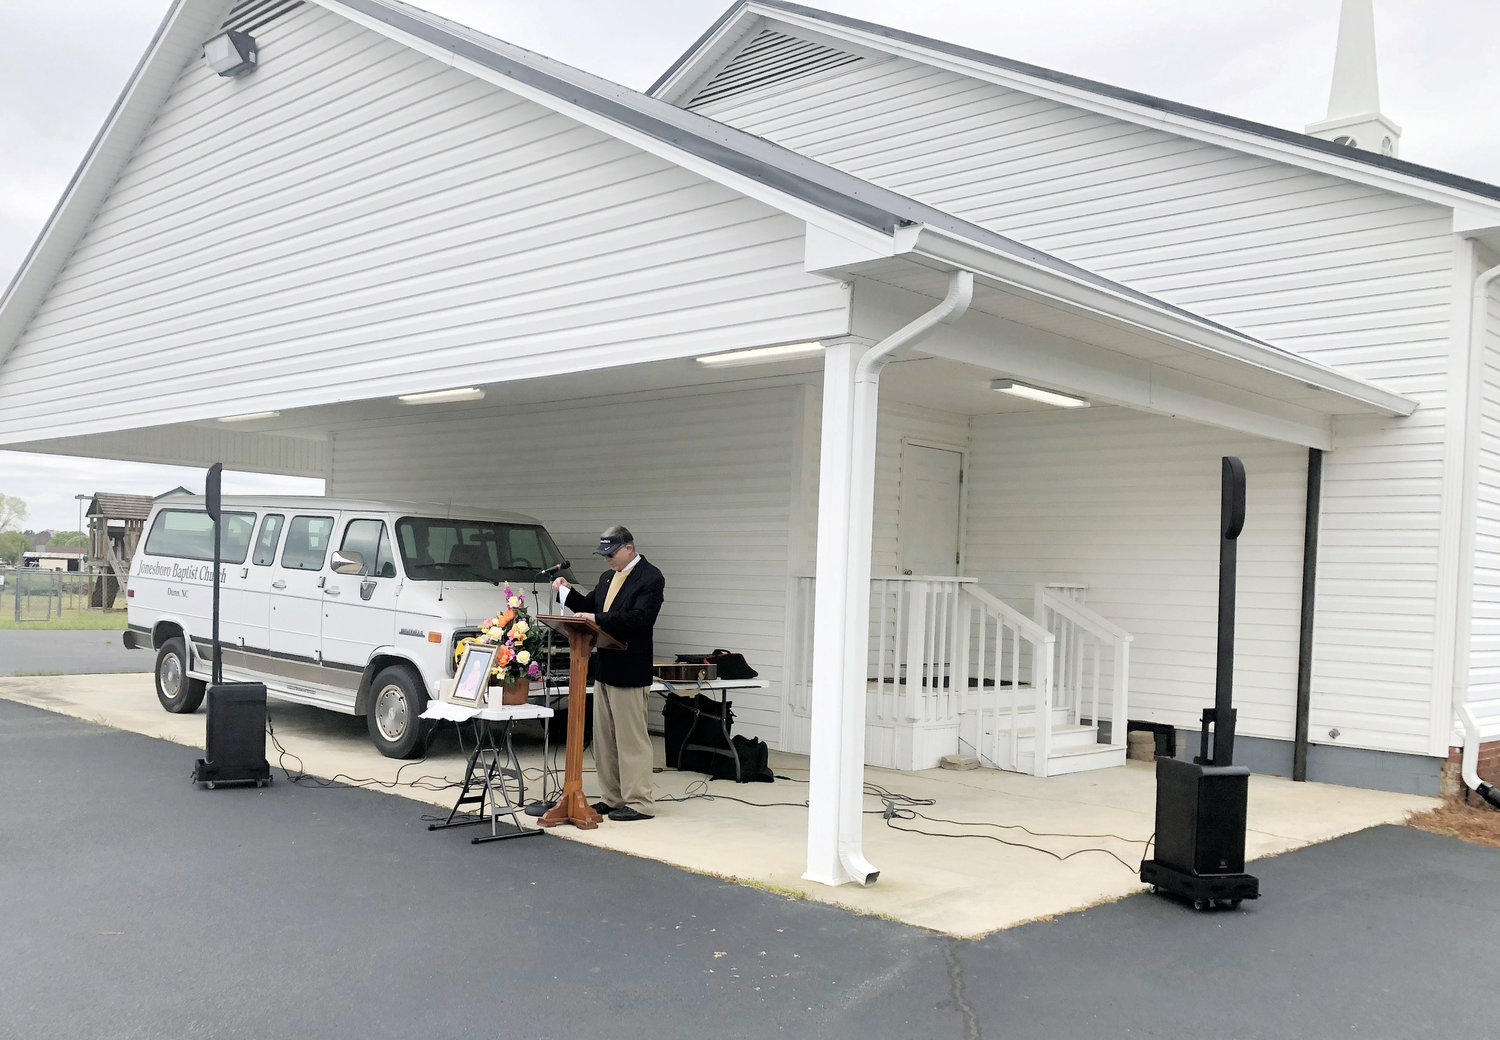 Separately worshiping together..The Rev. Charles Price leads a service before a parking lot full of cars, holding parishioners Sunday morning outside Jonesboro Baptist Church.